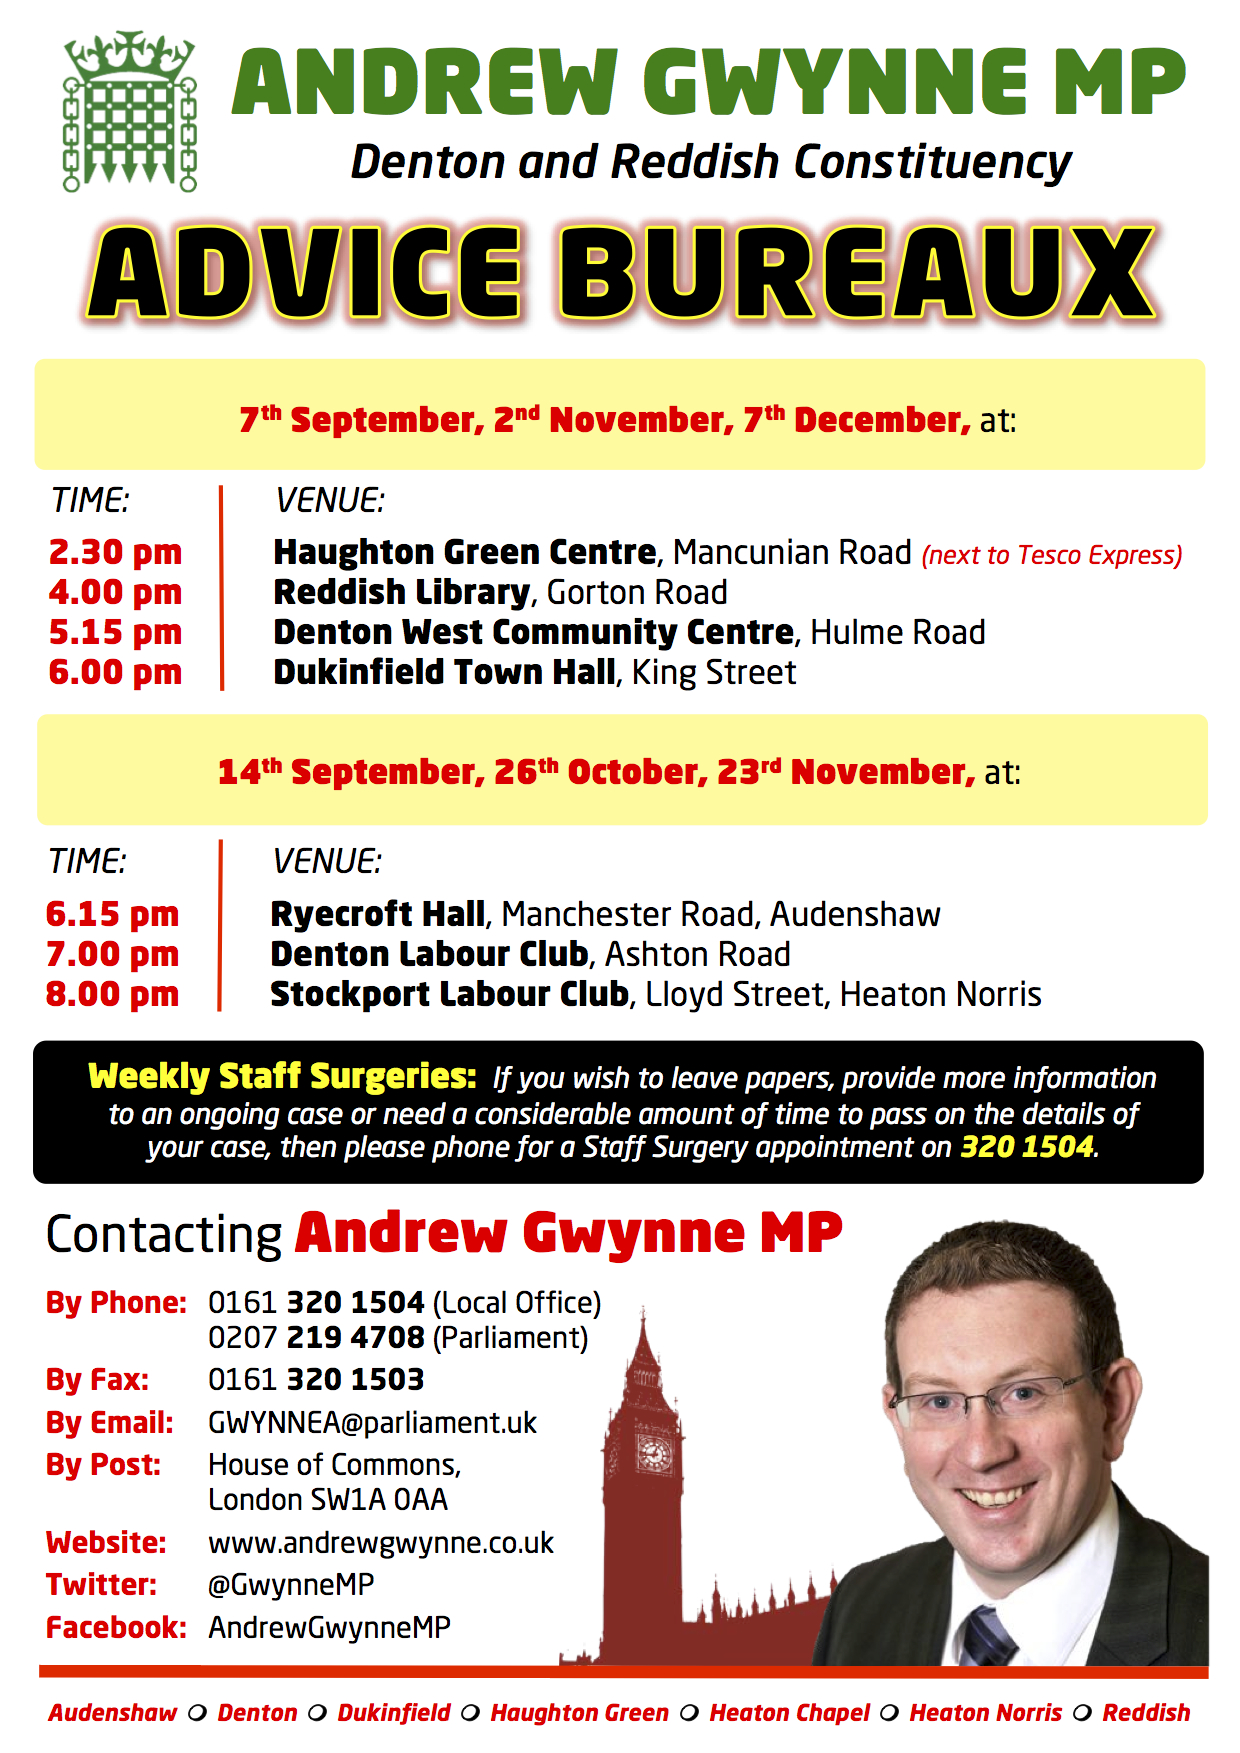 New Advice Bureaux dates announced